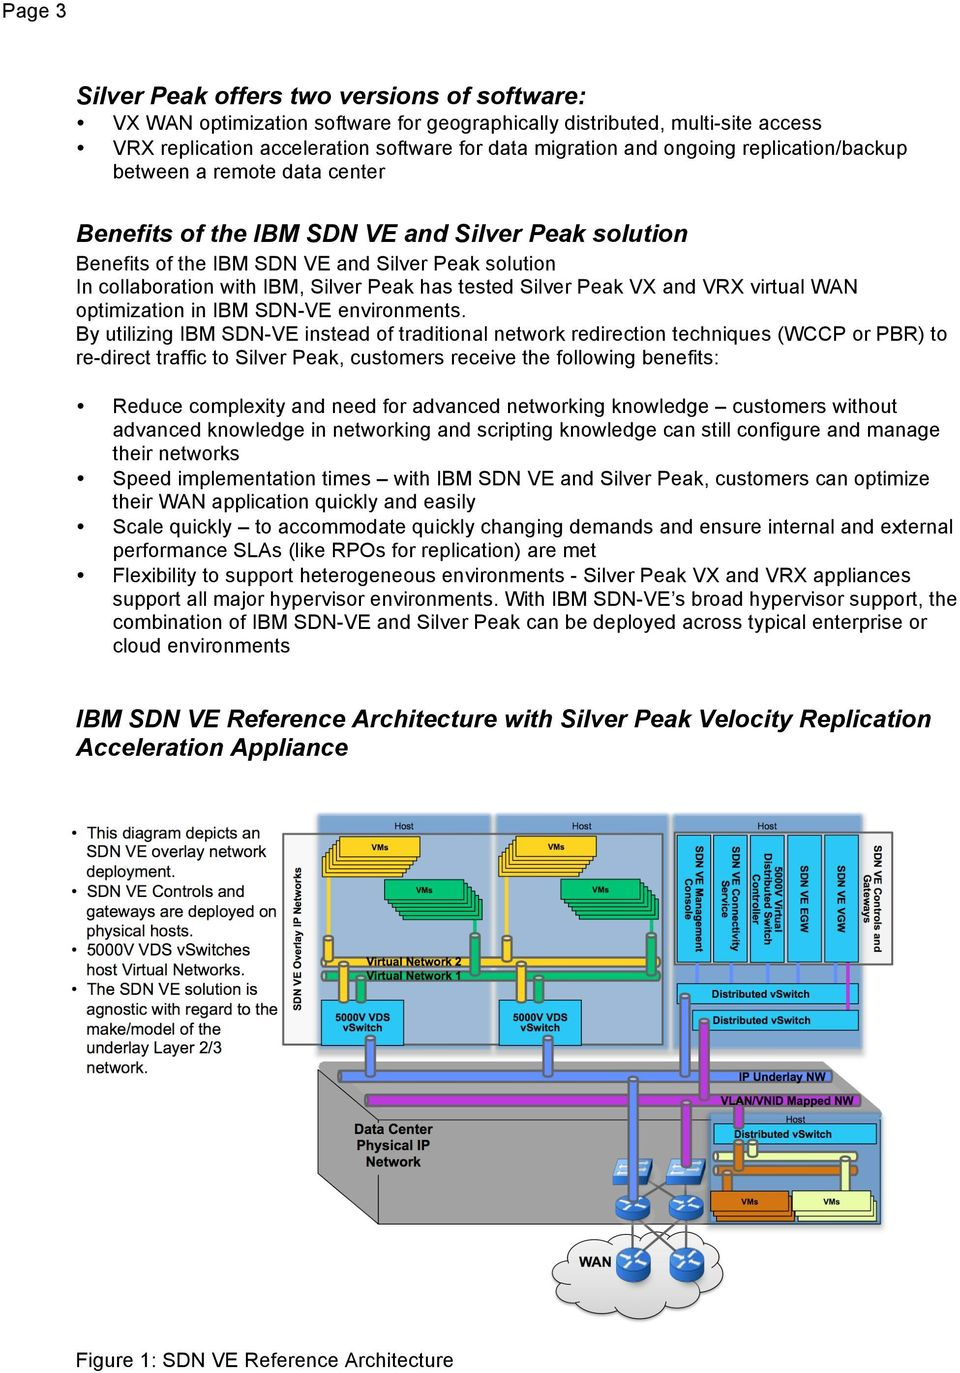 tested Silver Peak VX and VRX virtual WAN optimization in IBM SDN-VE environments.